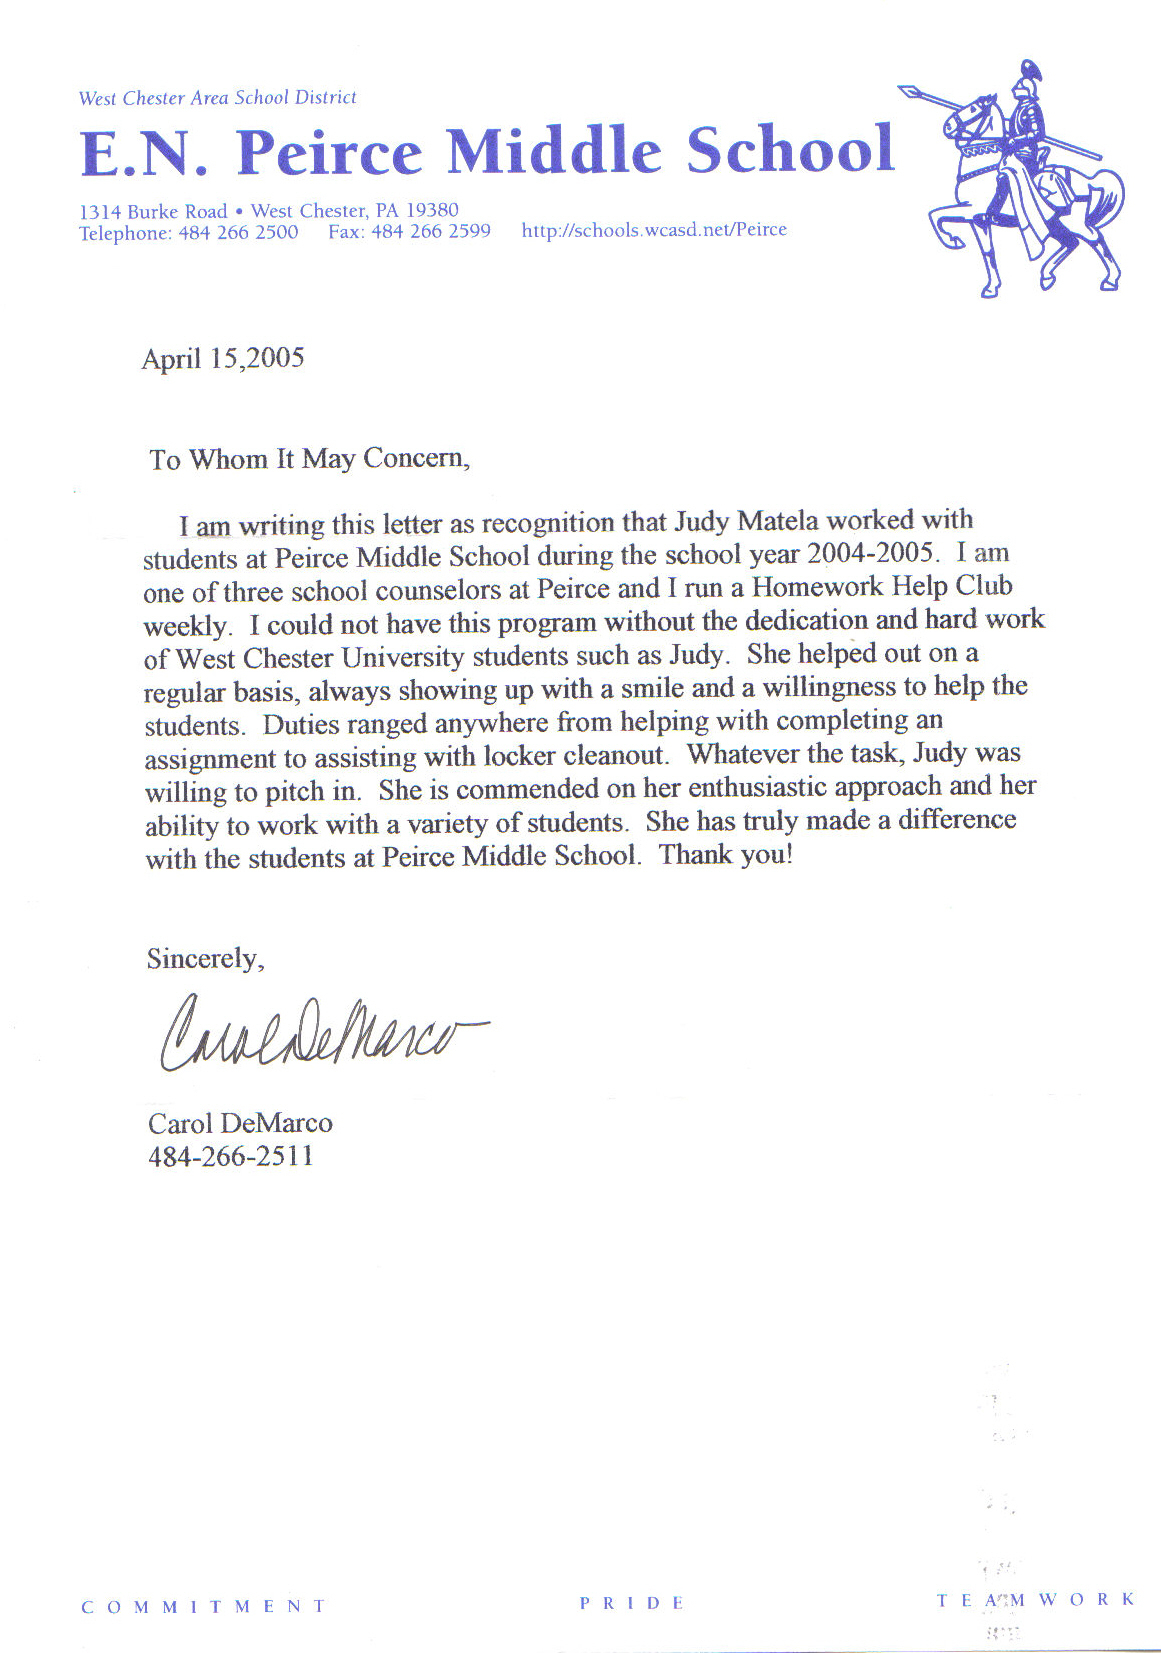 Recommendation Letter for Student From Teacher Template - Letter Of Re Mendation for A Teacher From A Colleague Acur